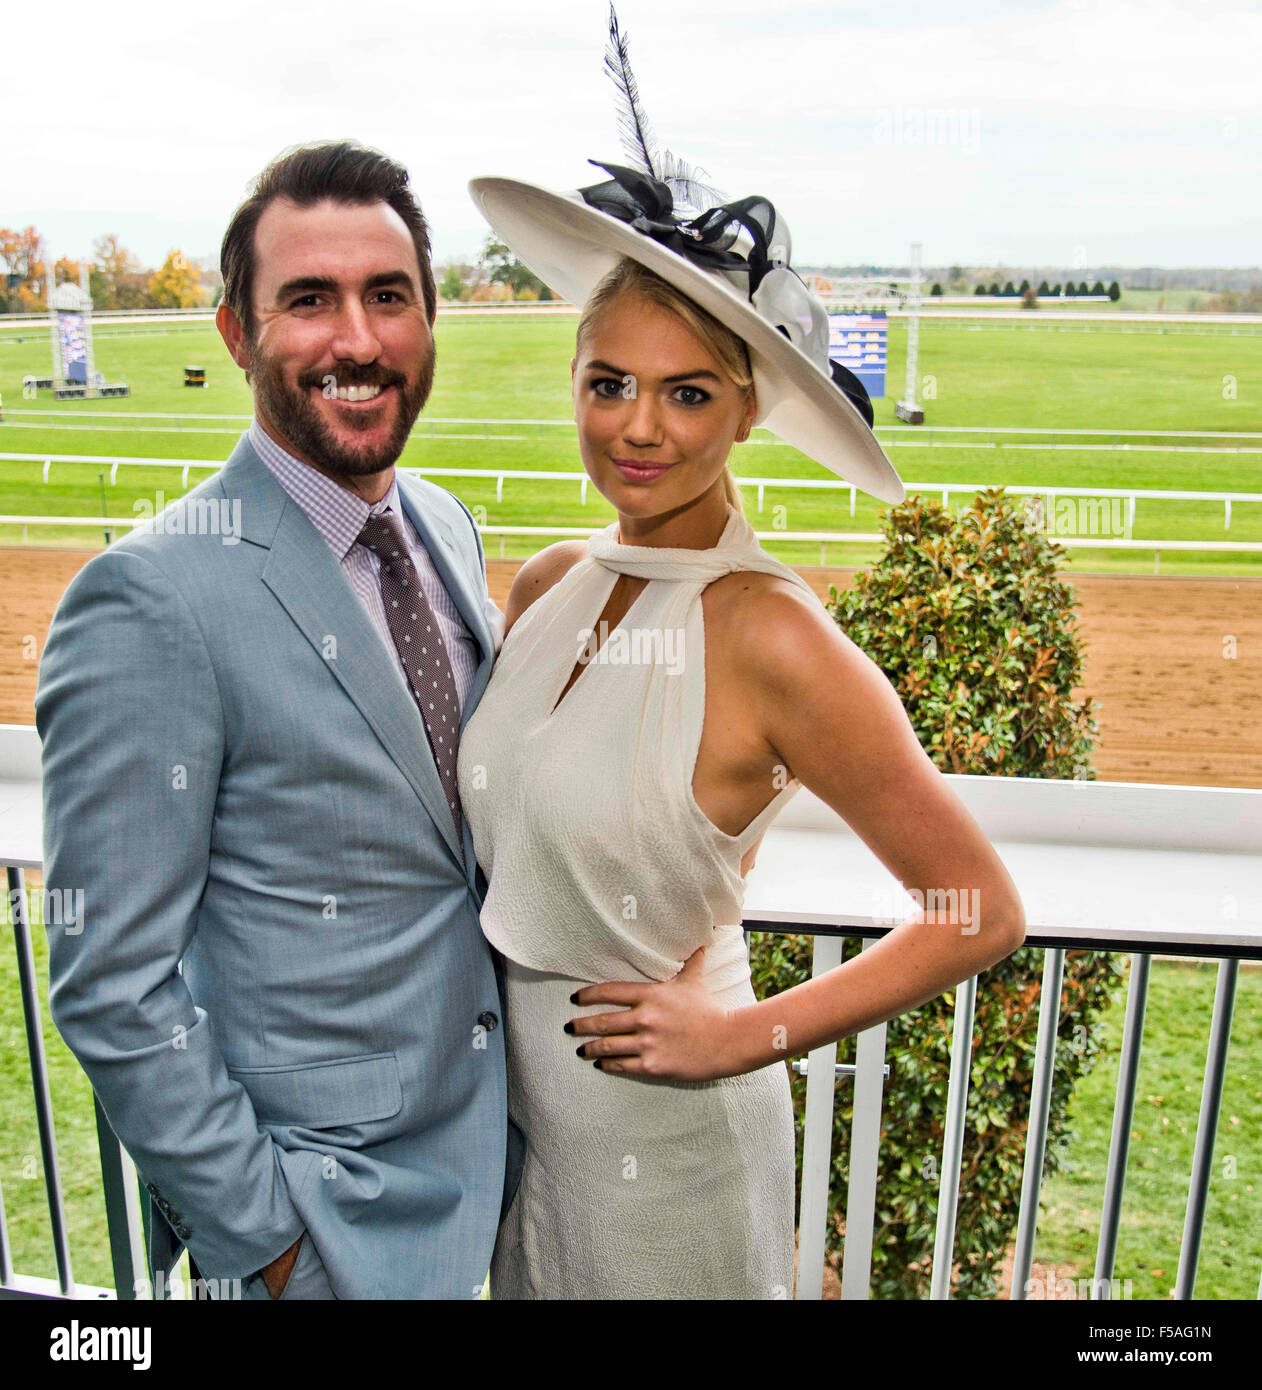 Kate Upton Breeders Cup High Resolution Stock Photography and